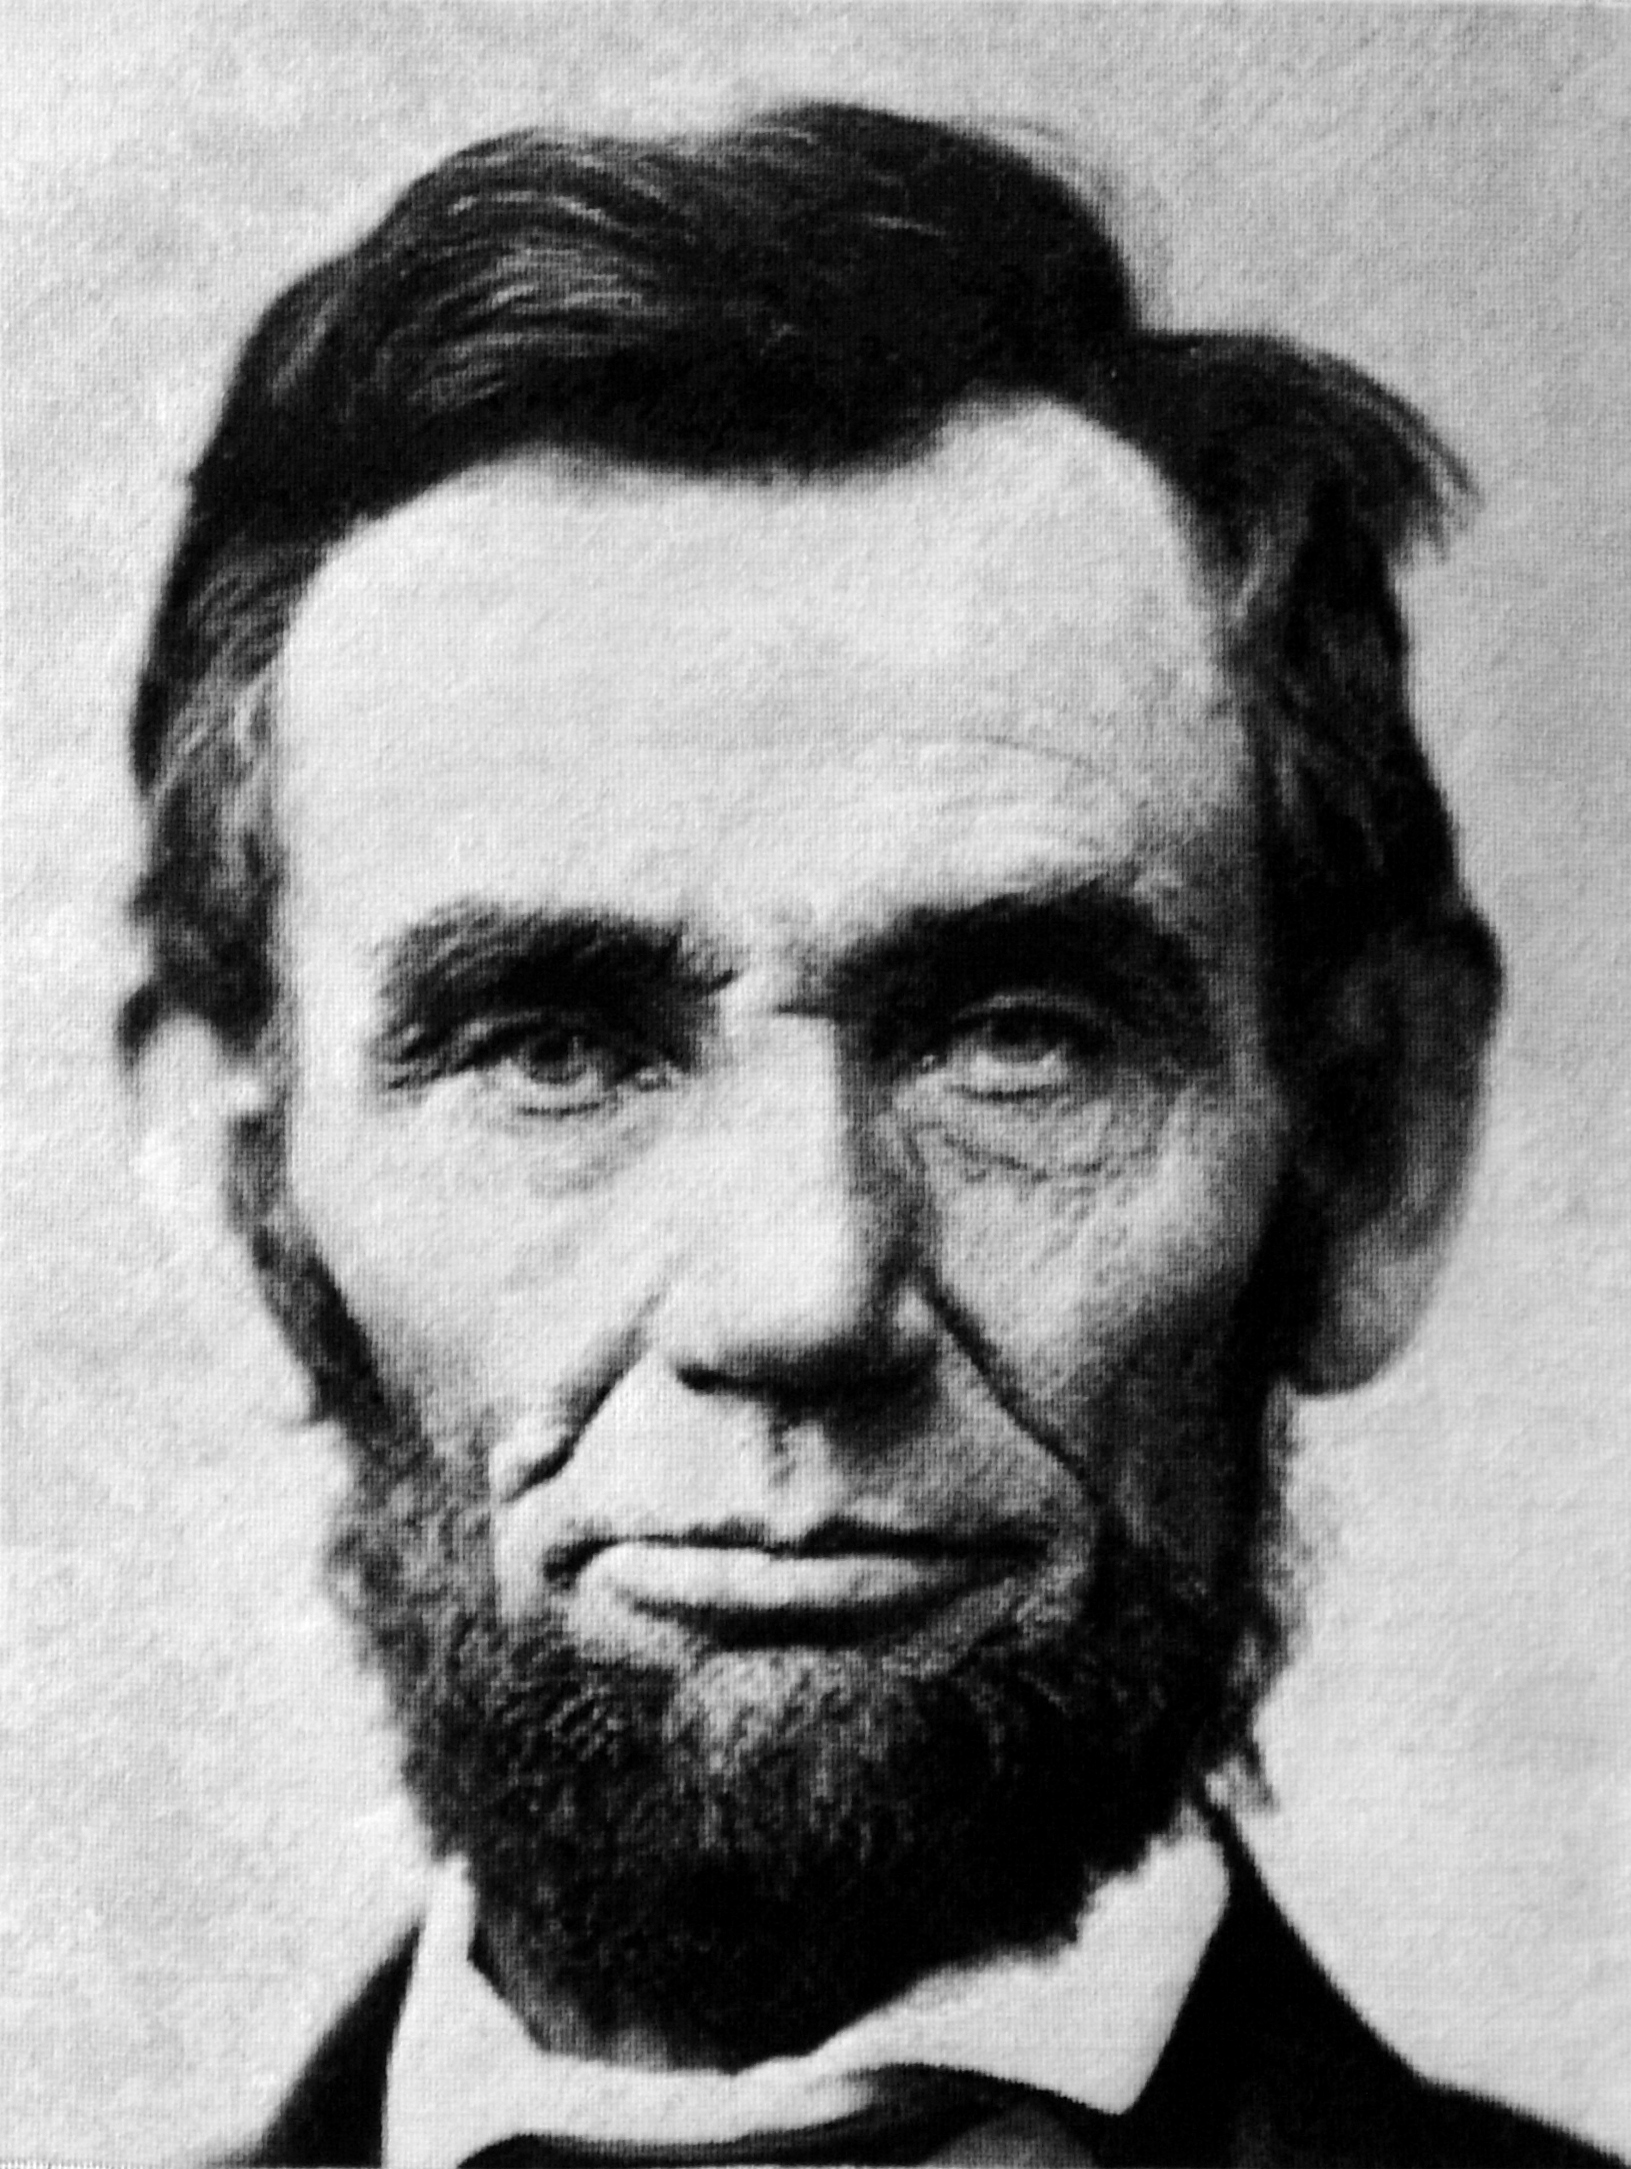 Abraham_Lincoln_head_on_shoulders_needlepoint